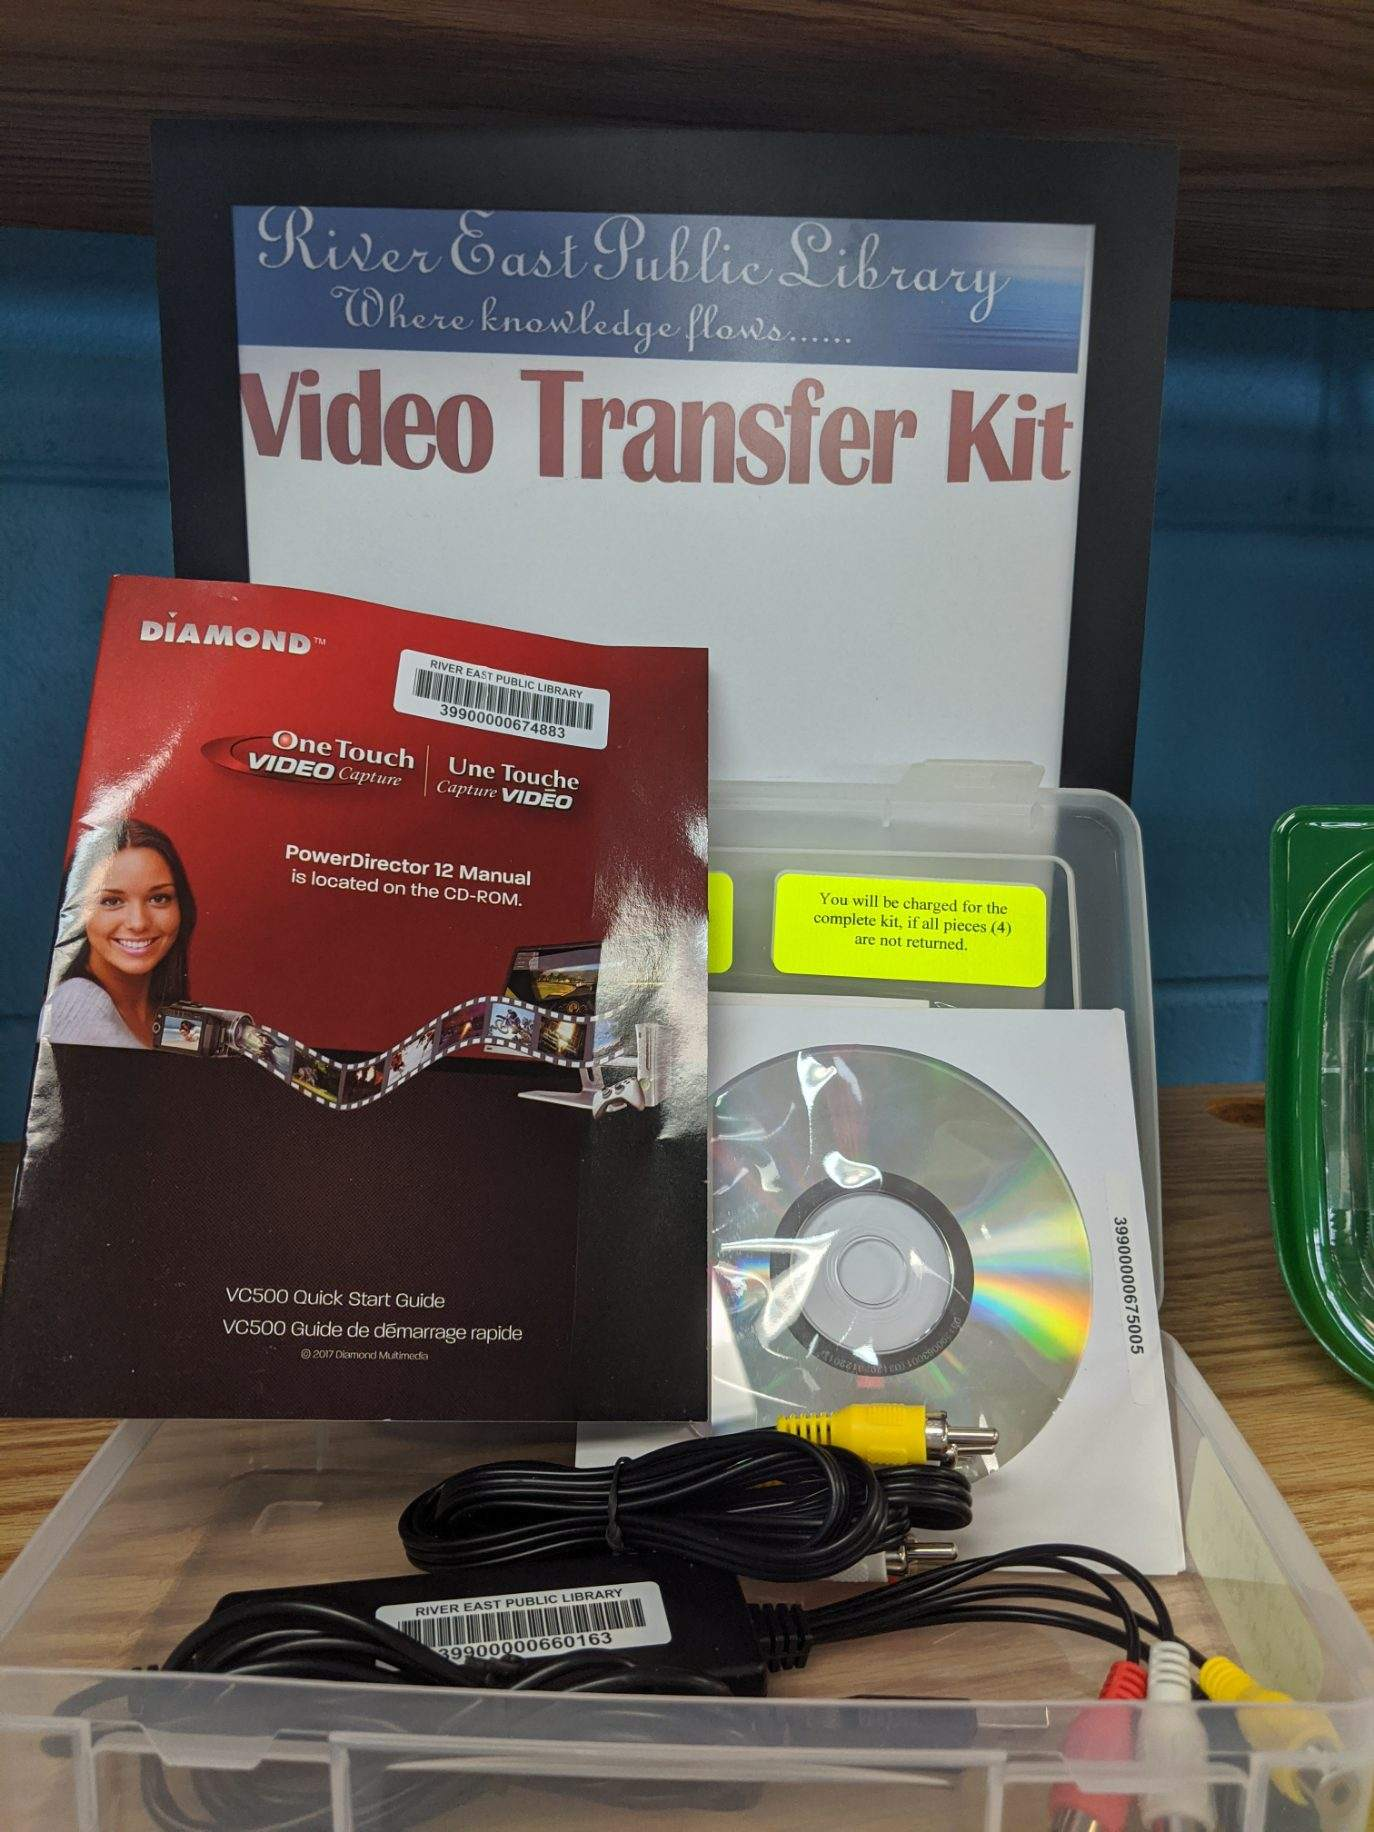 Image of a Video Transfer Machine